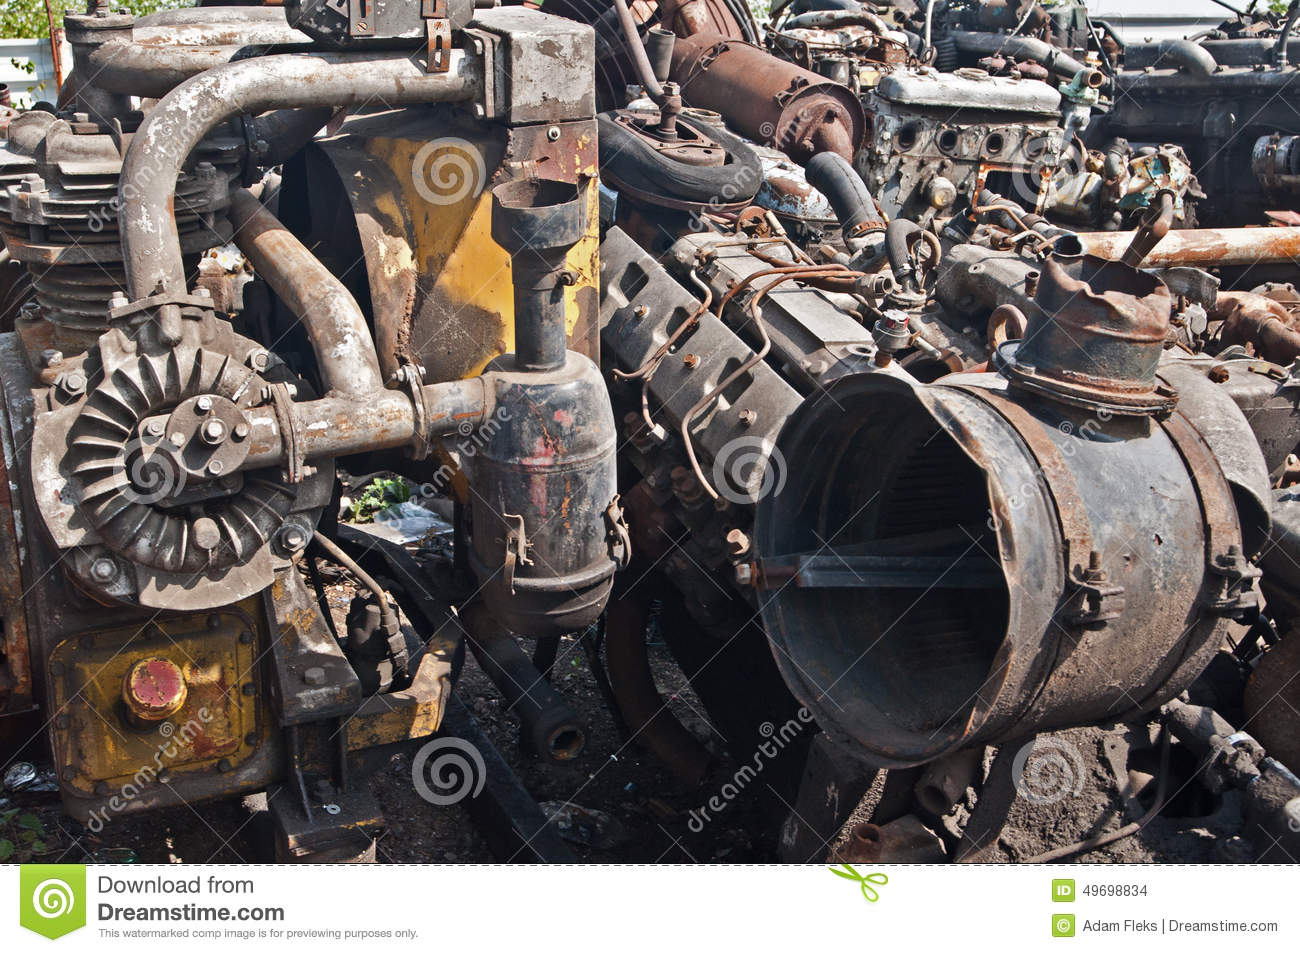 Scrap With Old Cars Parts On Scrap-heap Stock Photo - Image of ...